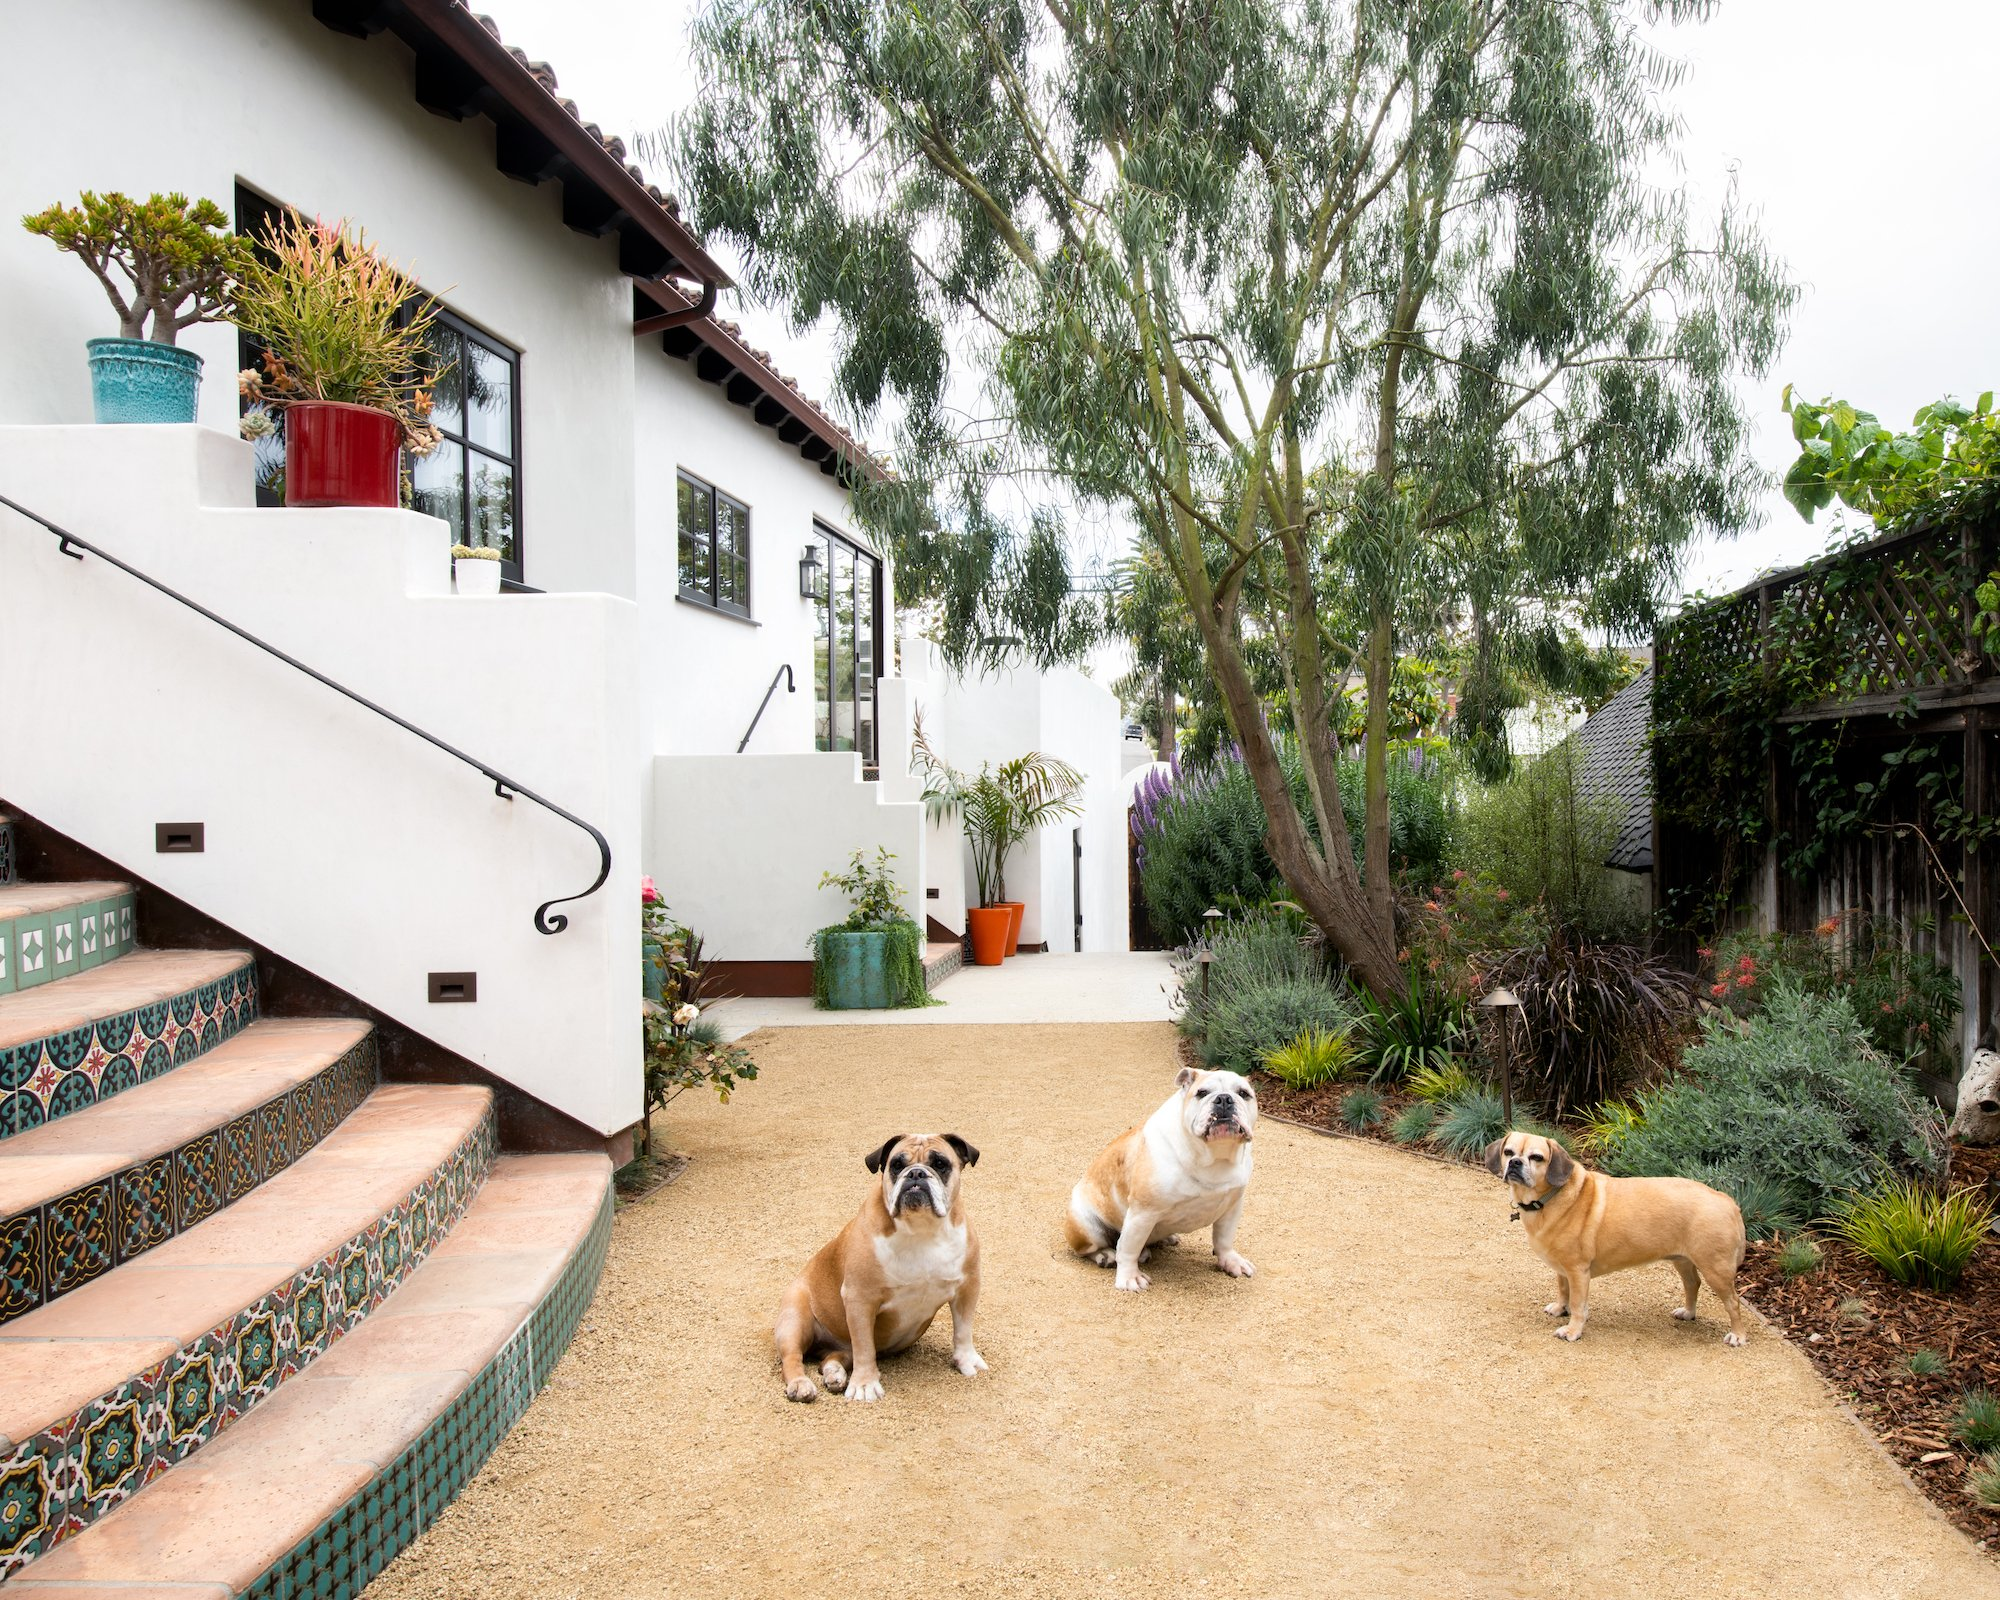 pet friendly classic Spanish bungalow exterior with bulldogs